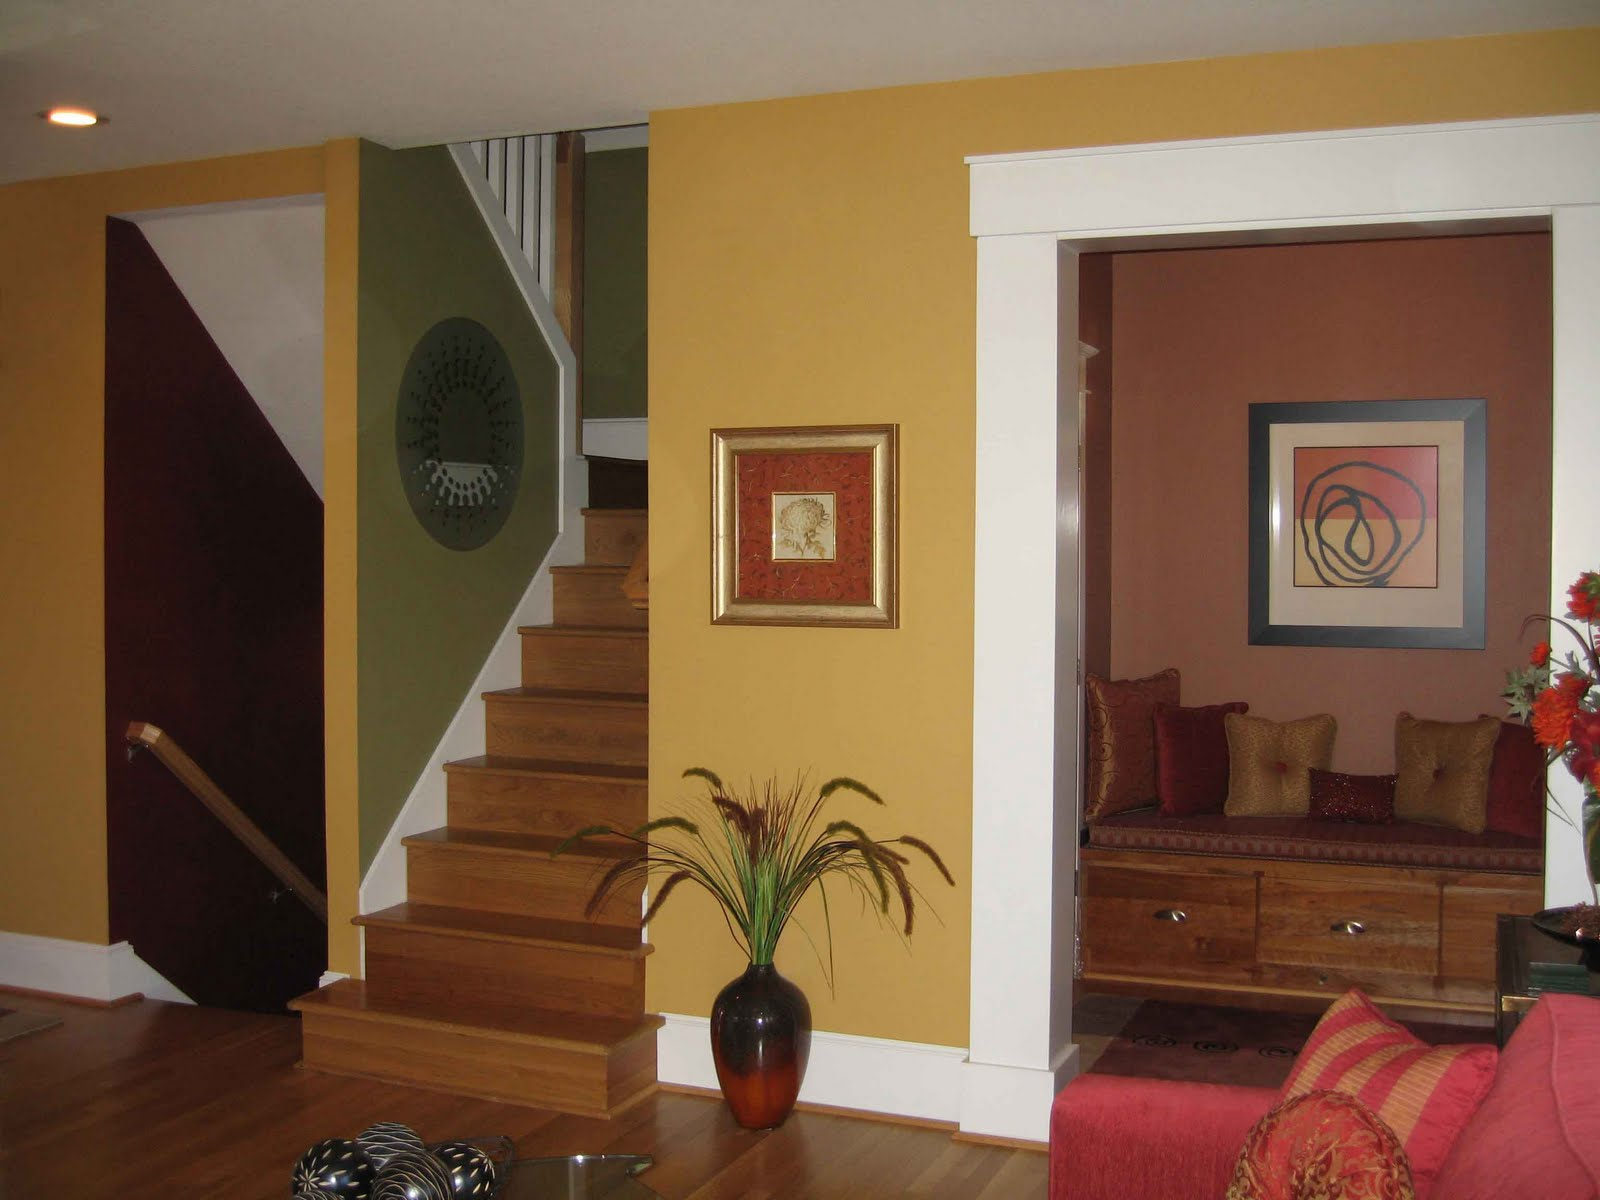 Interior paint color specialist in portland oregon color consulting portland interior designer - Interior home paint colors ...